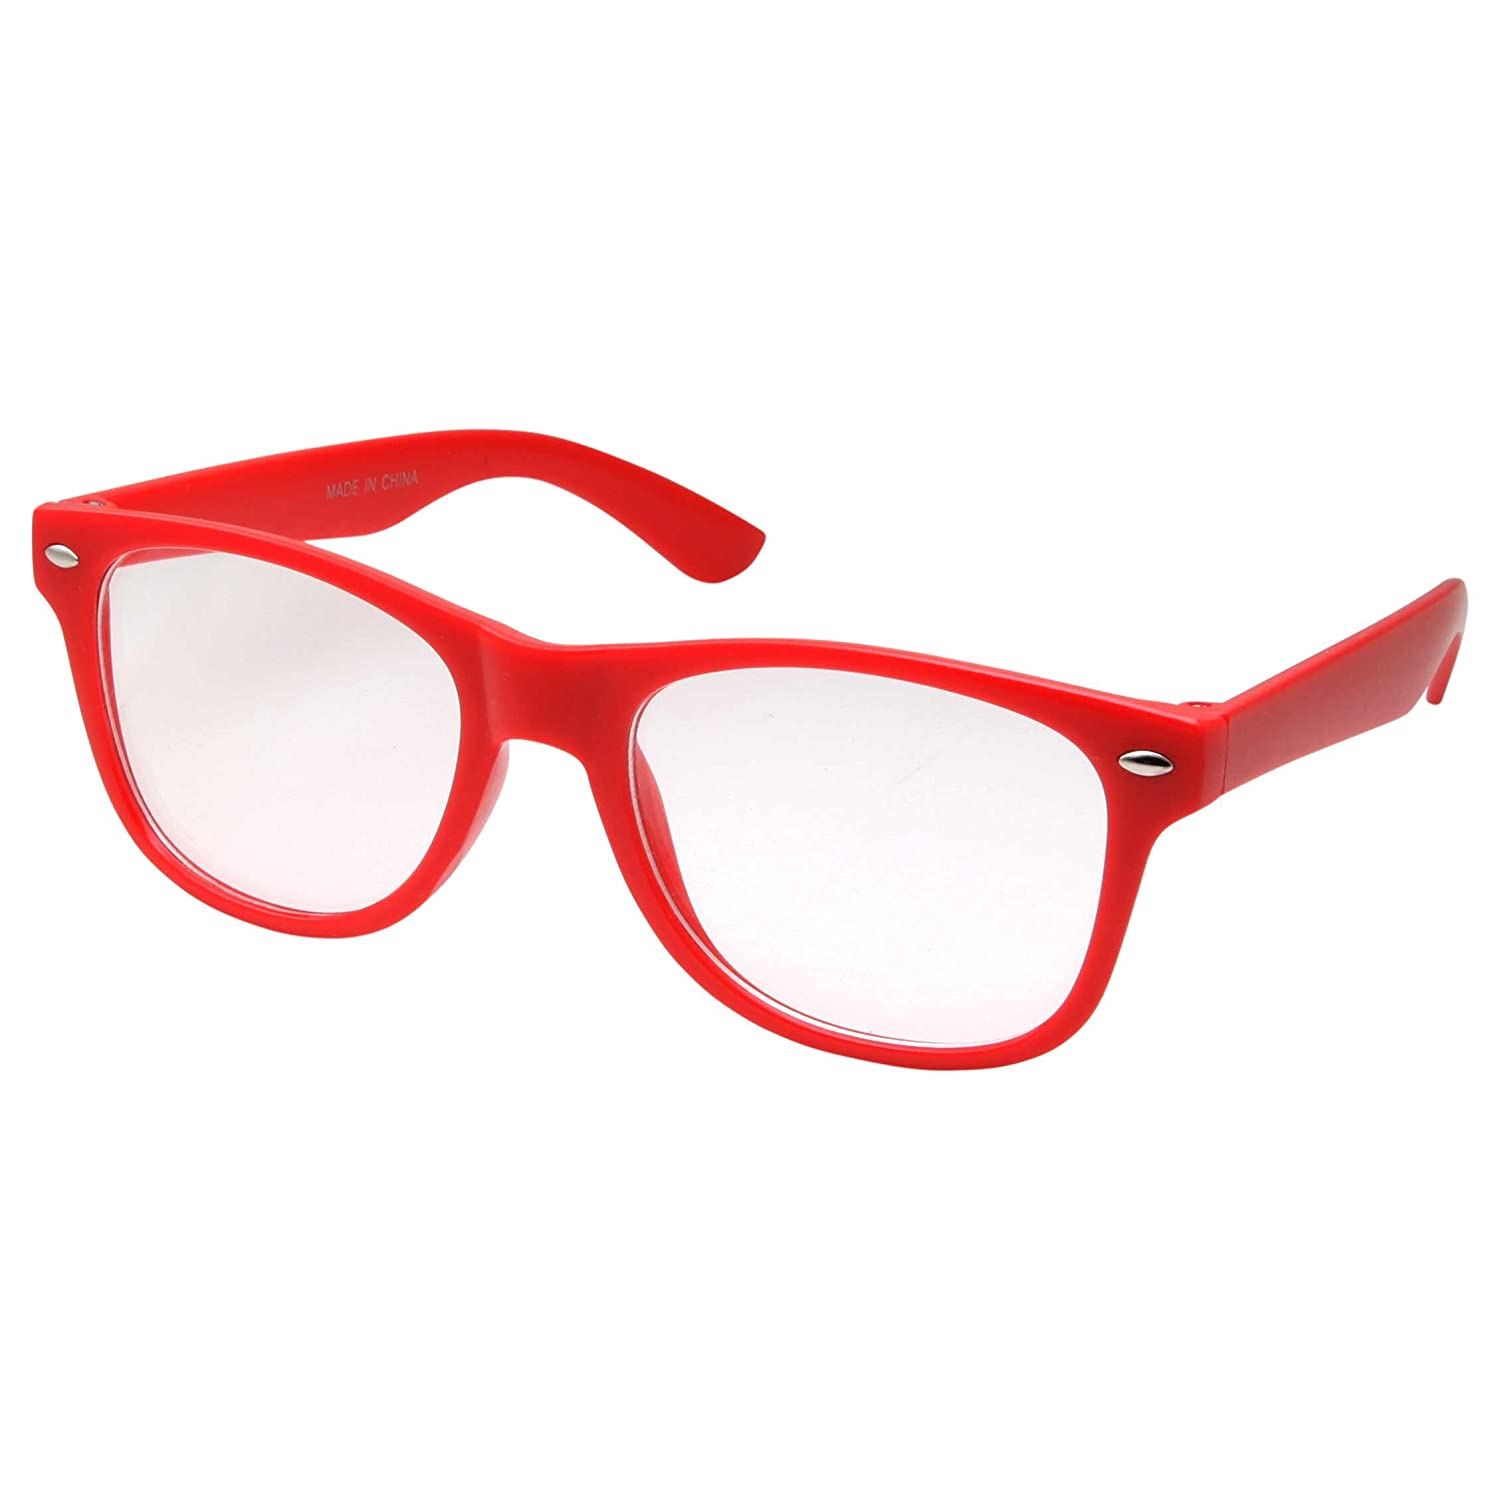 Kids Nerd Glasses Clear Lens Geek Fake for Costume Children's (Age 3-10) grinderPUNCH K61GP